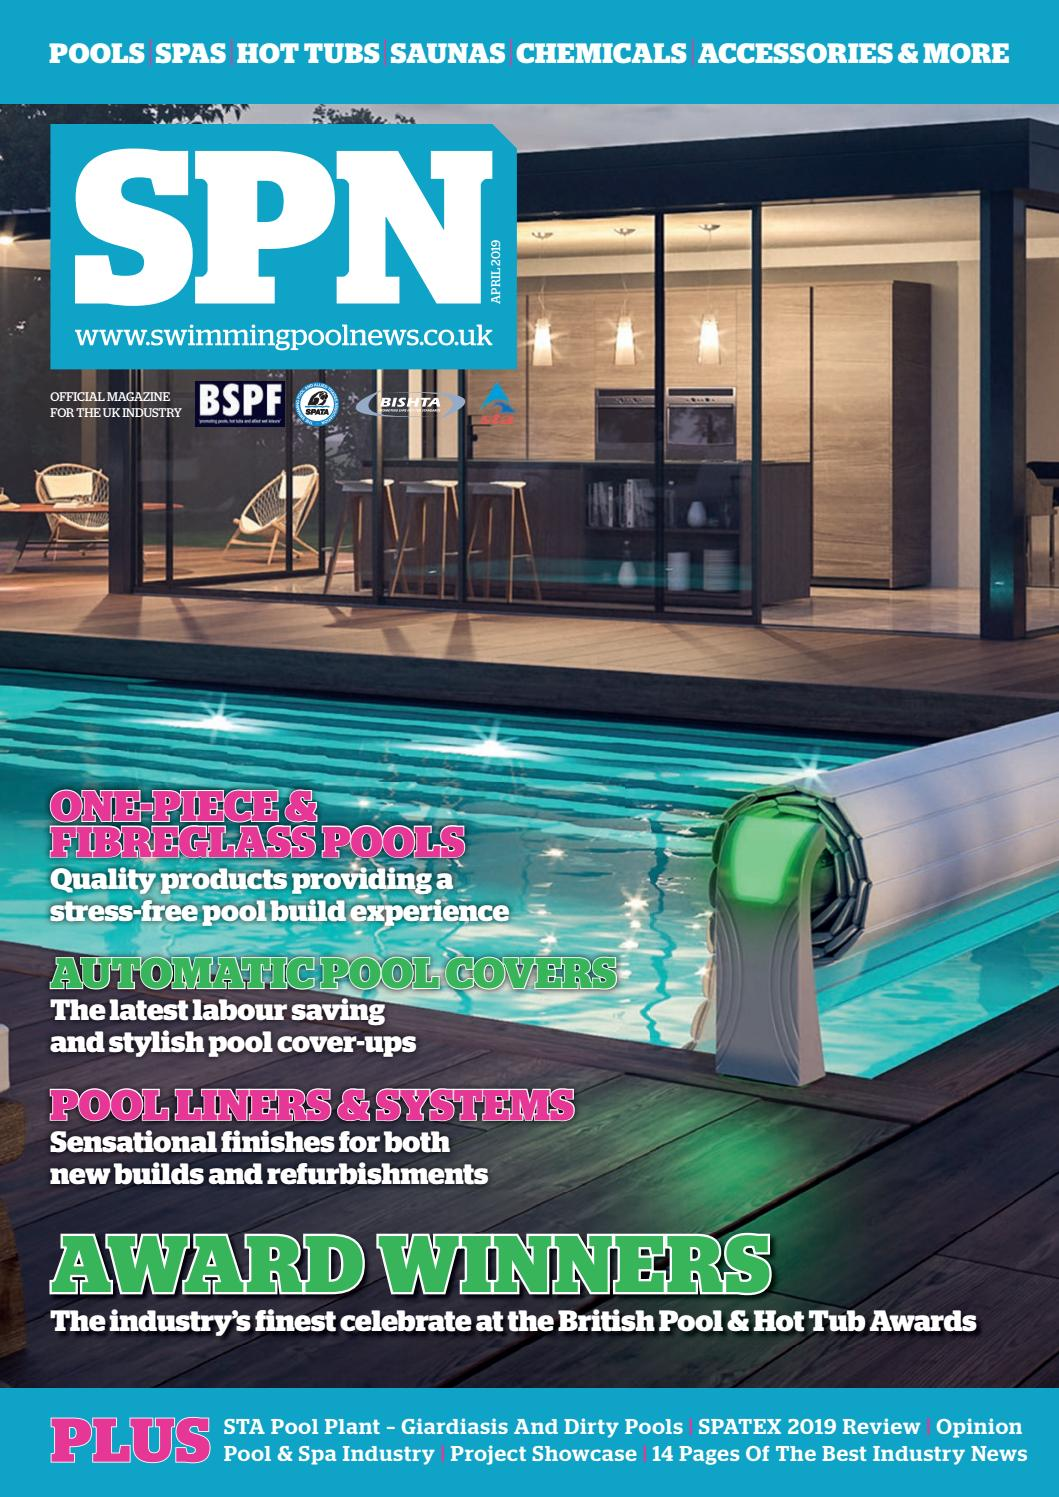 Jacuzzi Pool Top Caps Spn Swimming Pool News April 2019 By Aqua Publishing Ltd Issuu